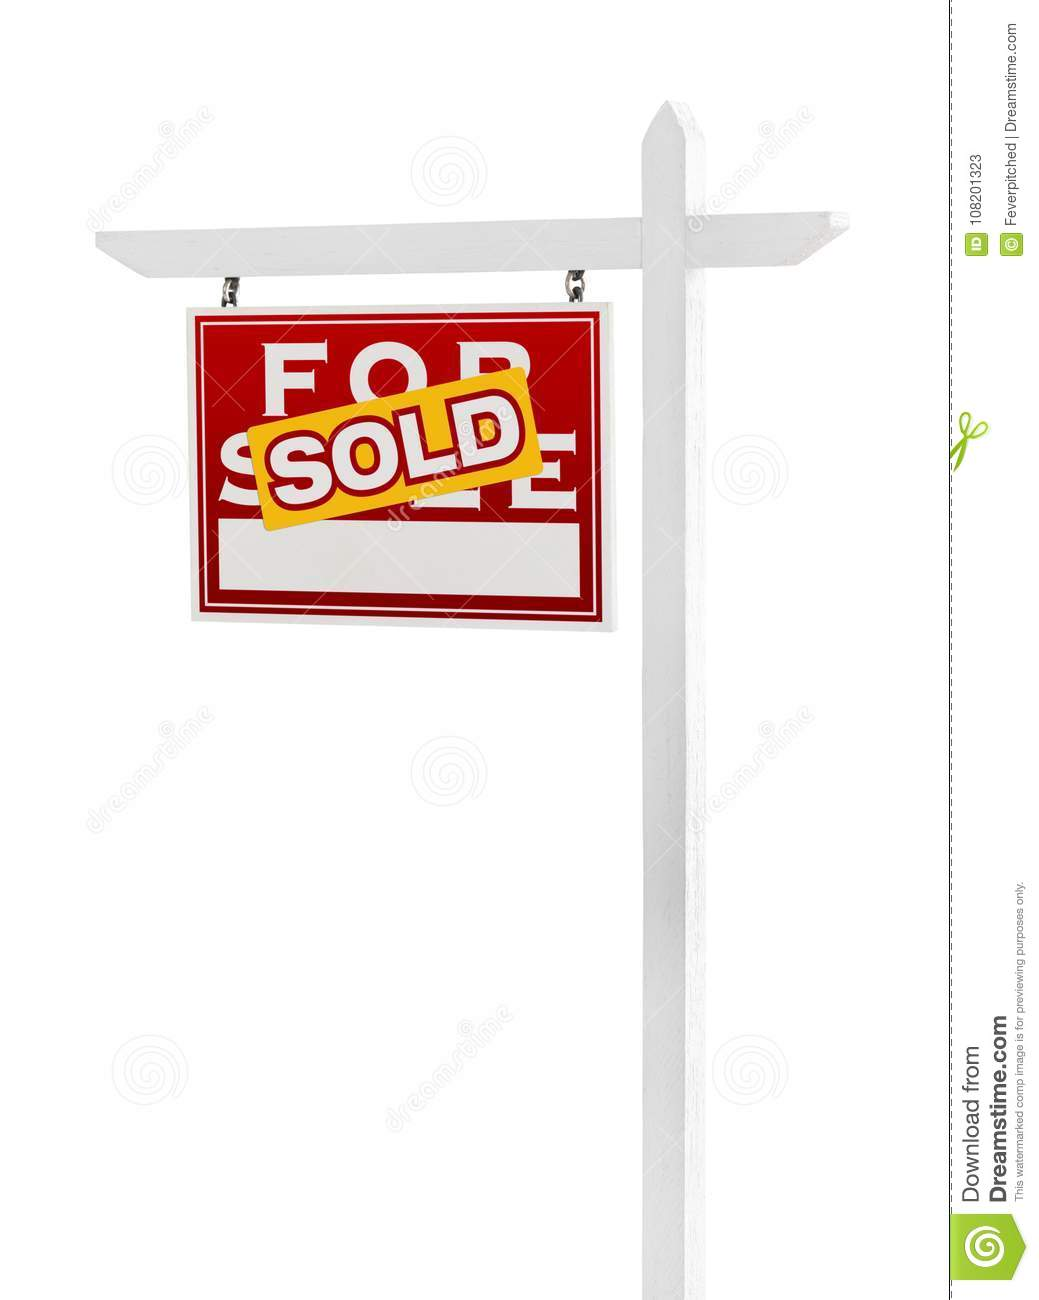 Left Facing Sold For Sale Real Estate Sign on White